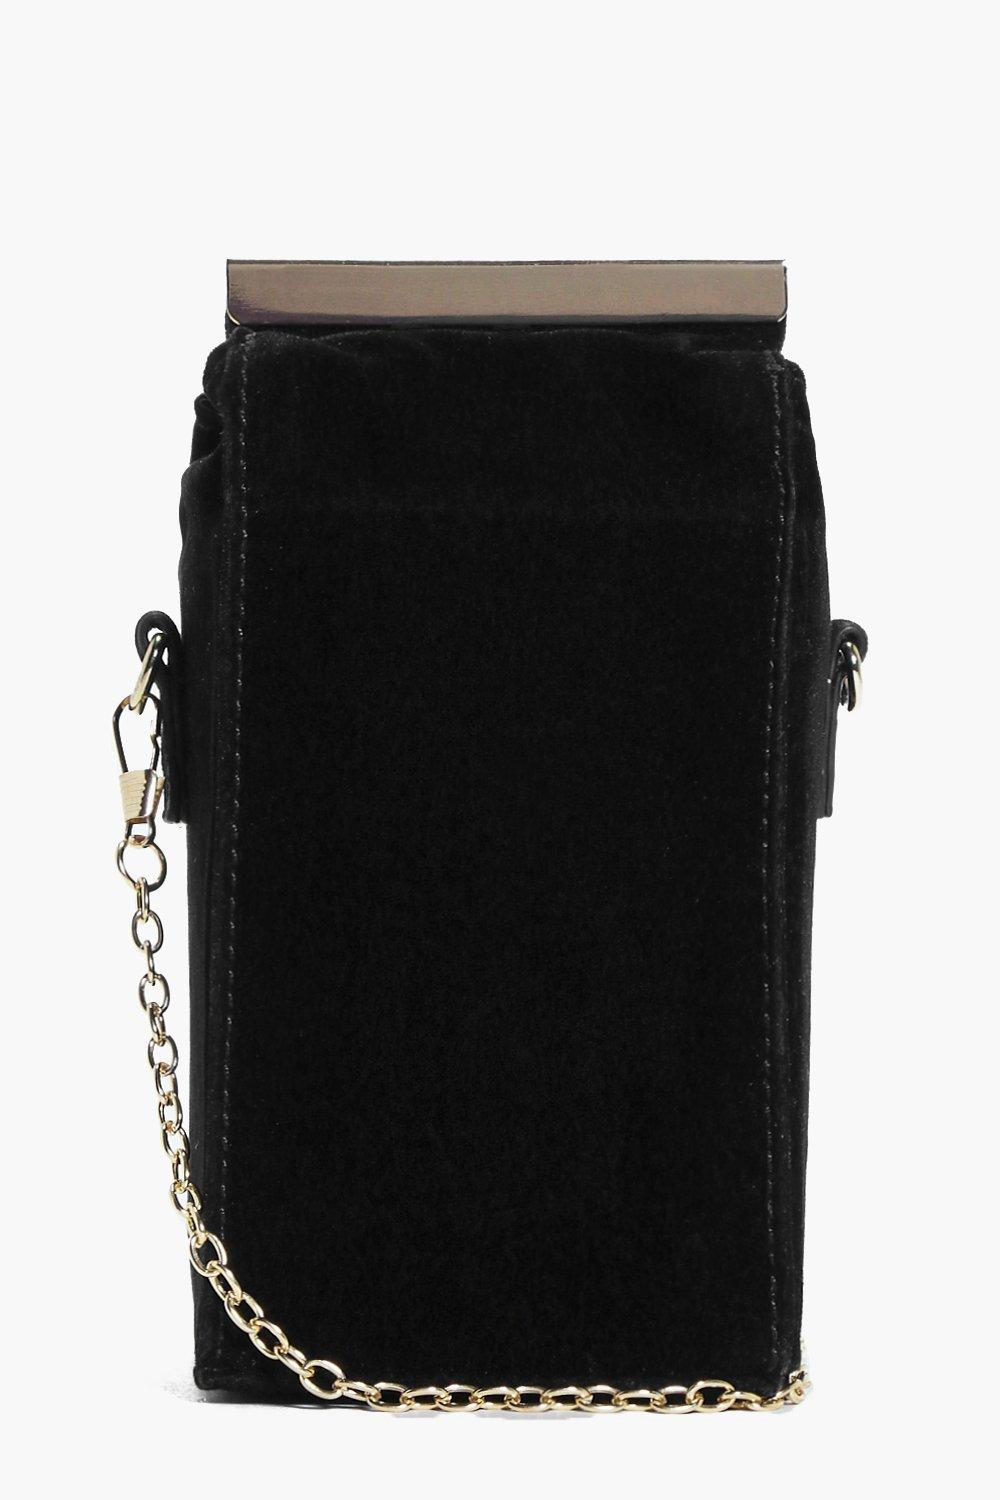 Ella Milk Carton Velvet Cross Body Bag